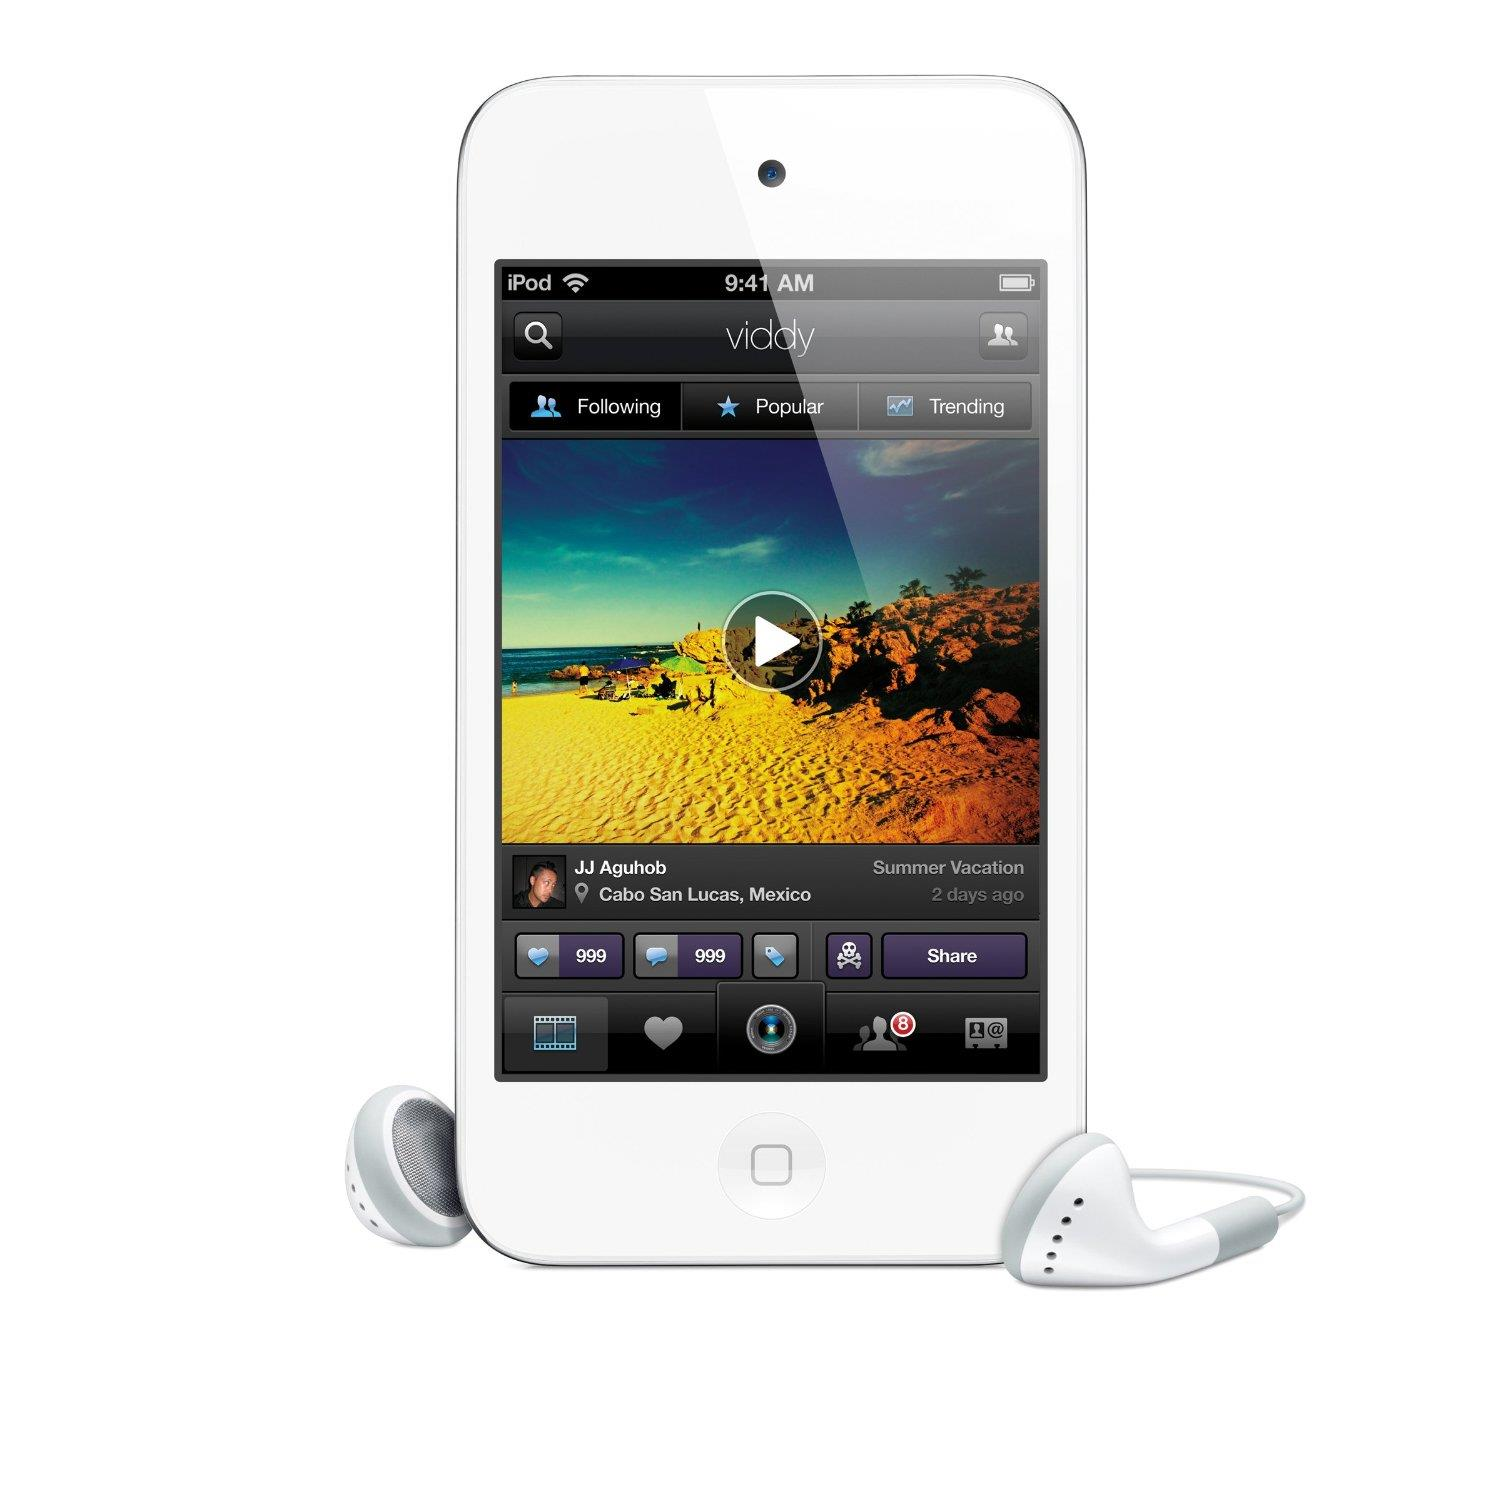 Apple iPod Touch 64Gb 4th Gen (White) + Free Proporta Antimicrobial Silicone Case worth £9.95